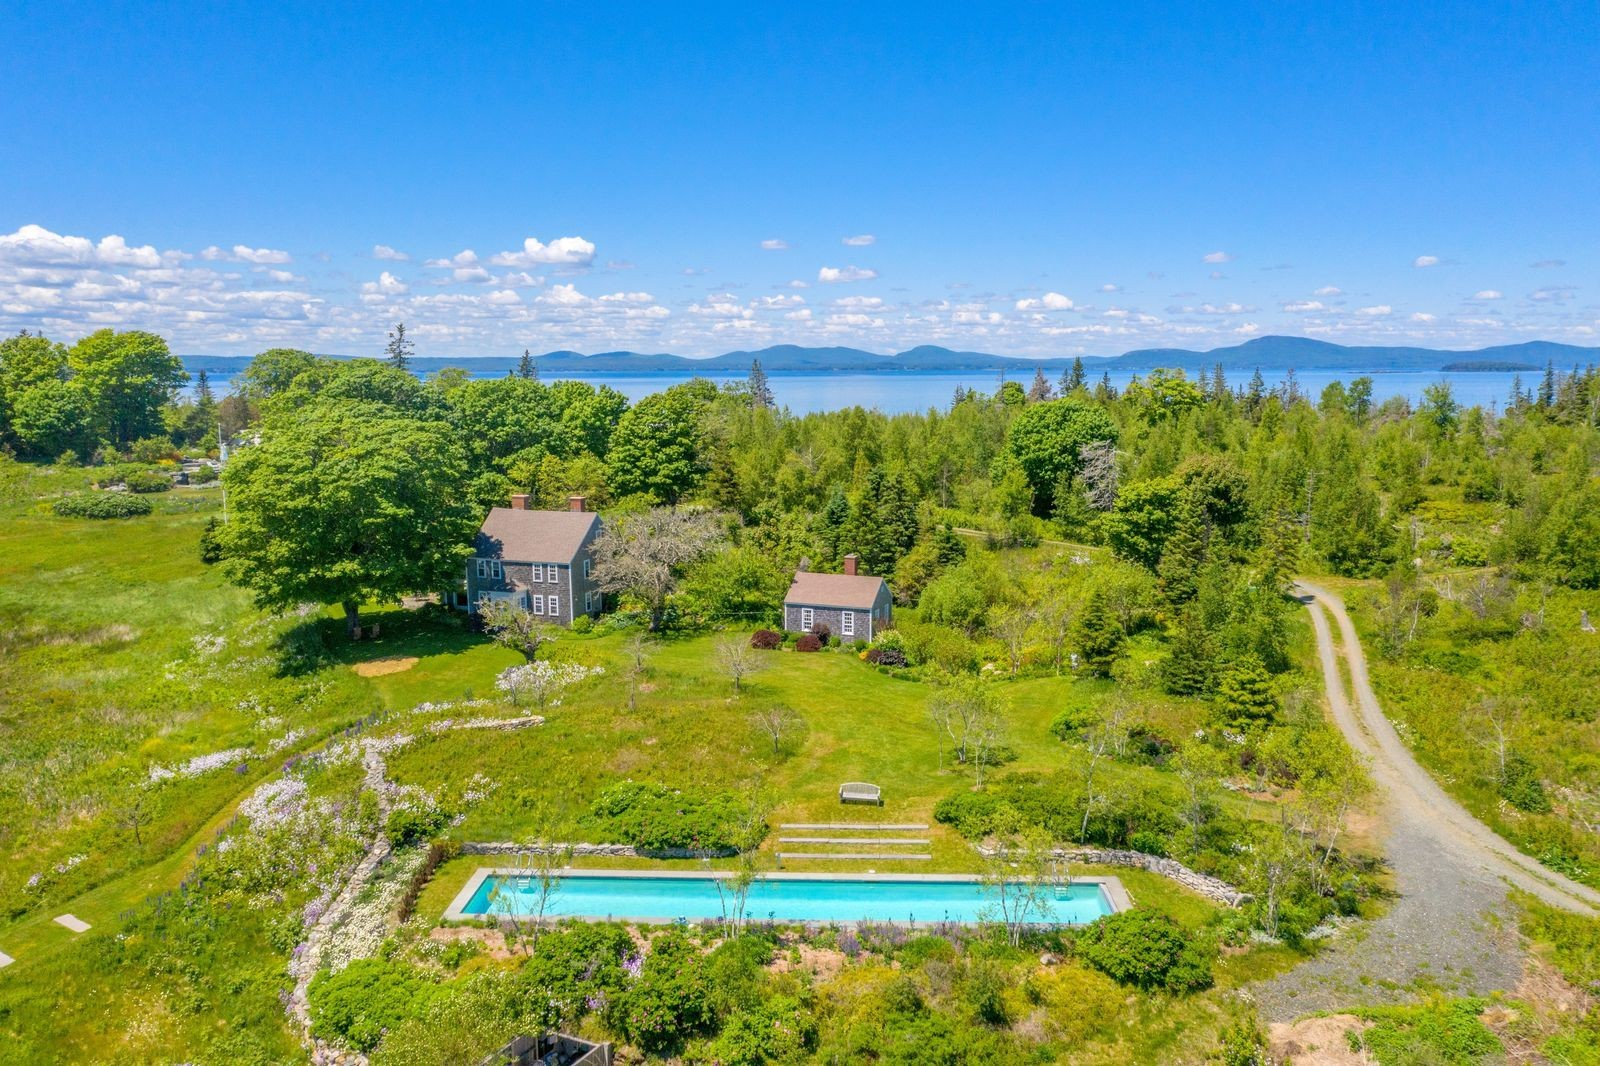 captain crabtree house a luxury single family home for sale in north haven, maine property id 405644772 christie s international real estate